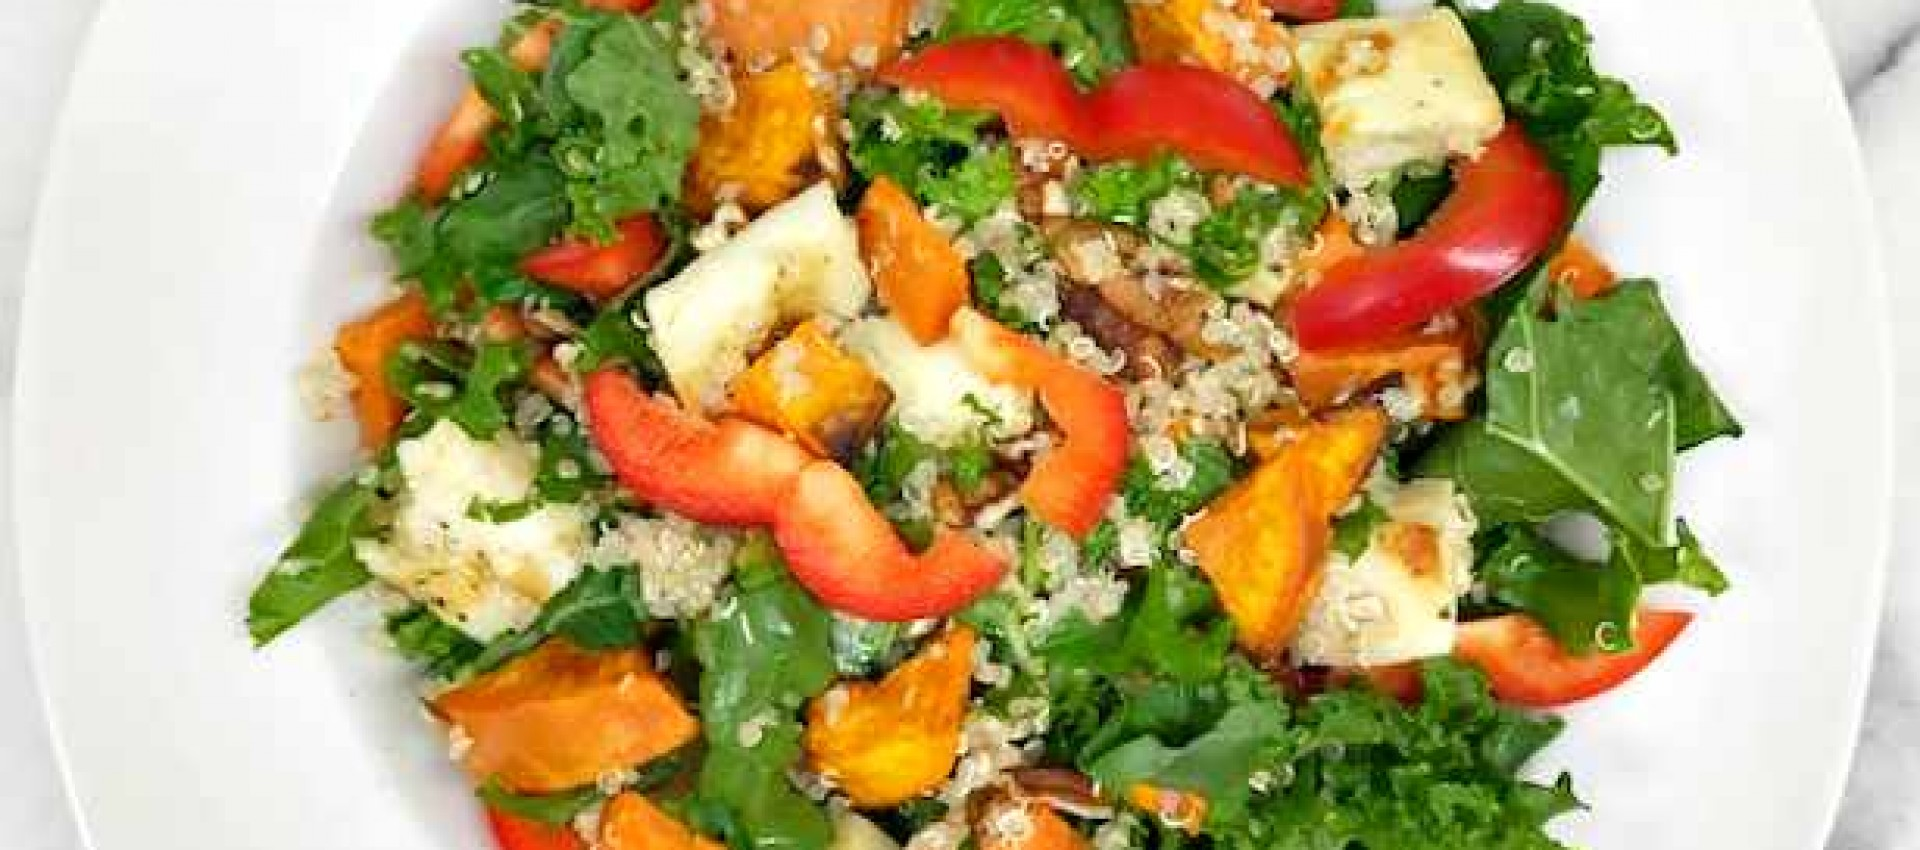 Quinoa Salad with Roasted Vegetables and Greens